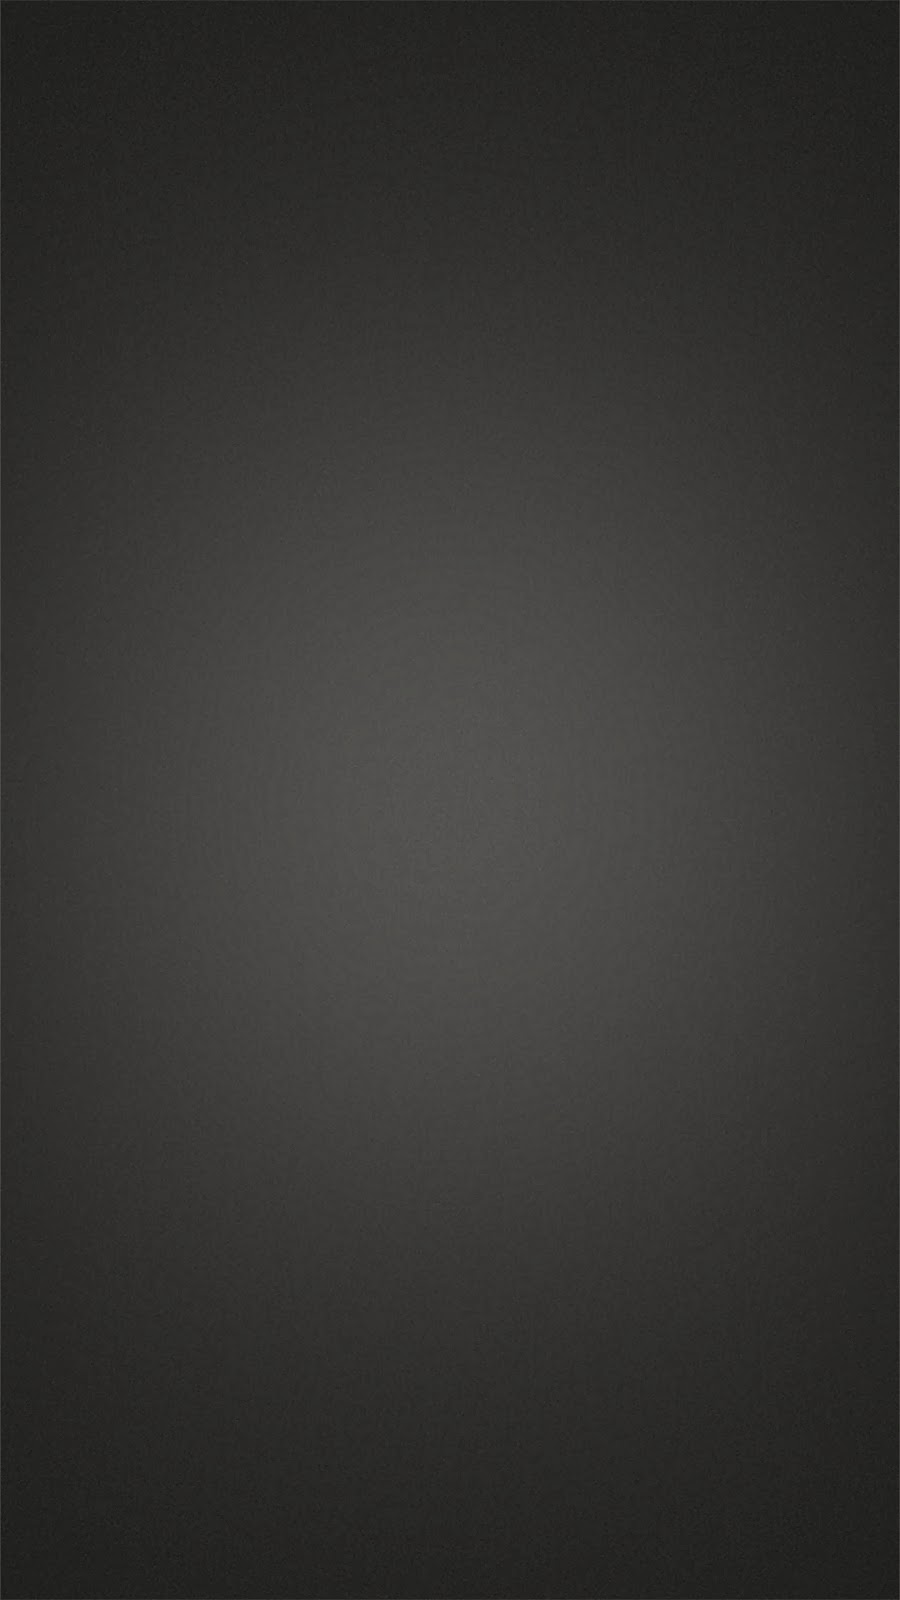 Android Phone Black Wallpapers Wallpaper Albums 900x1600